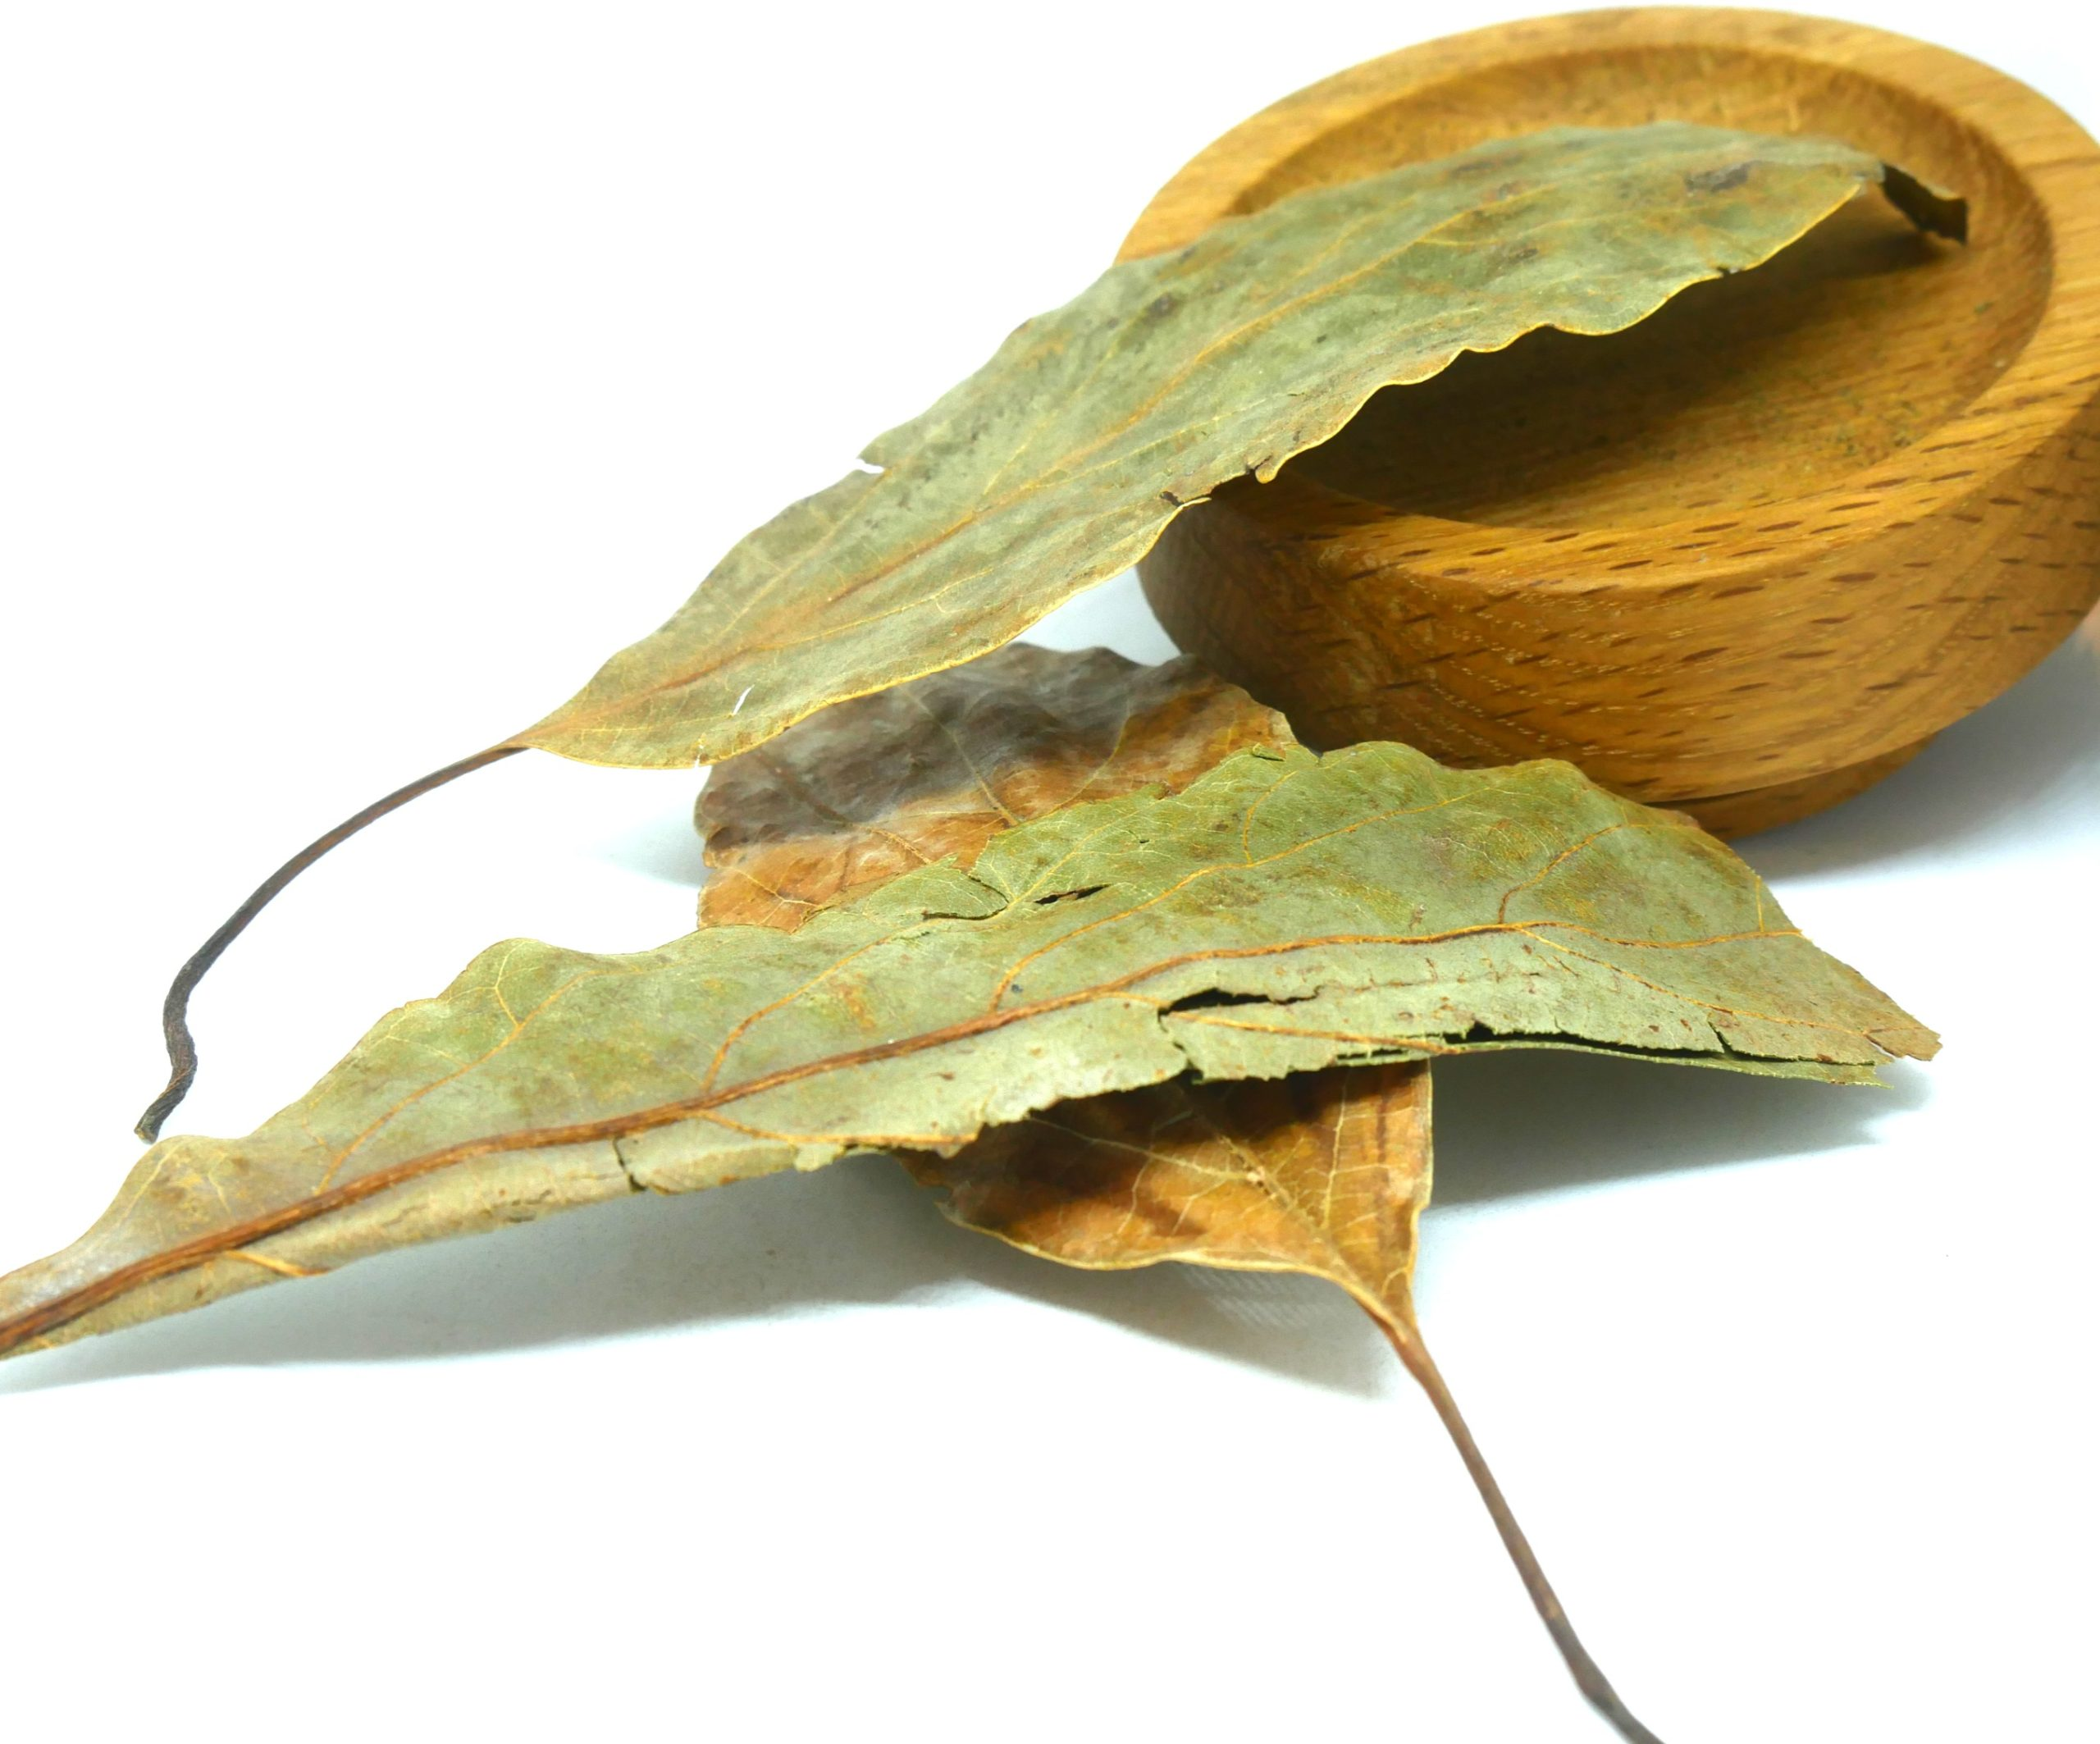 Avocado Leaves from the Natural Spot